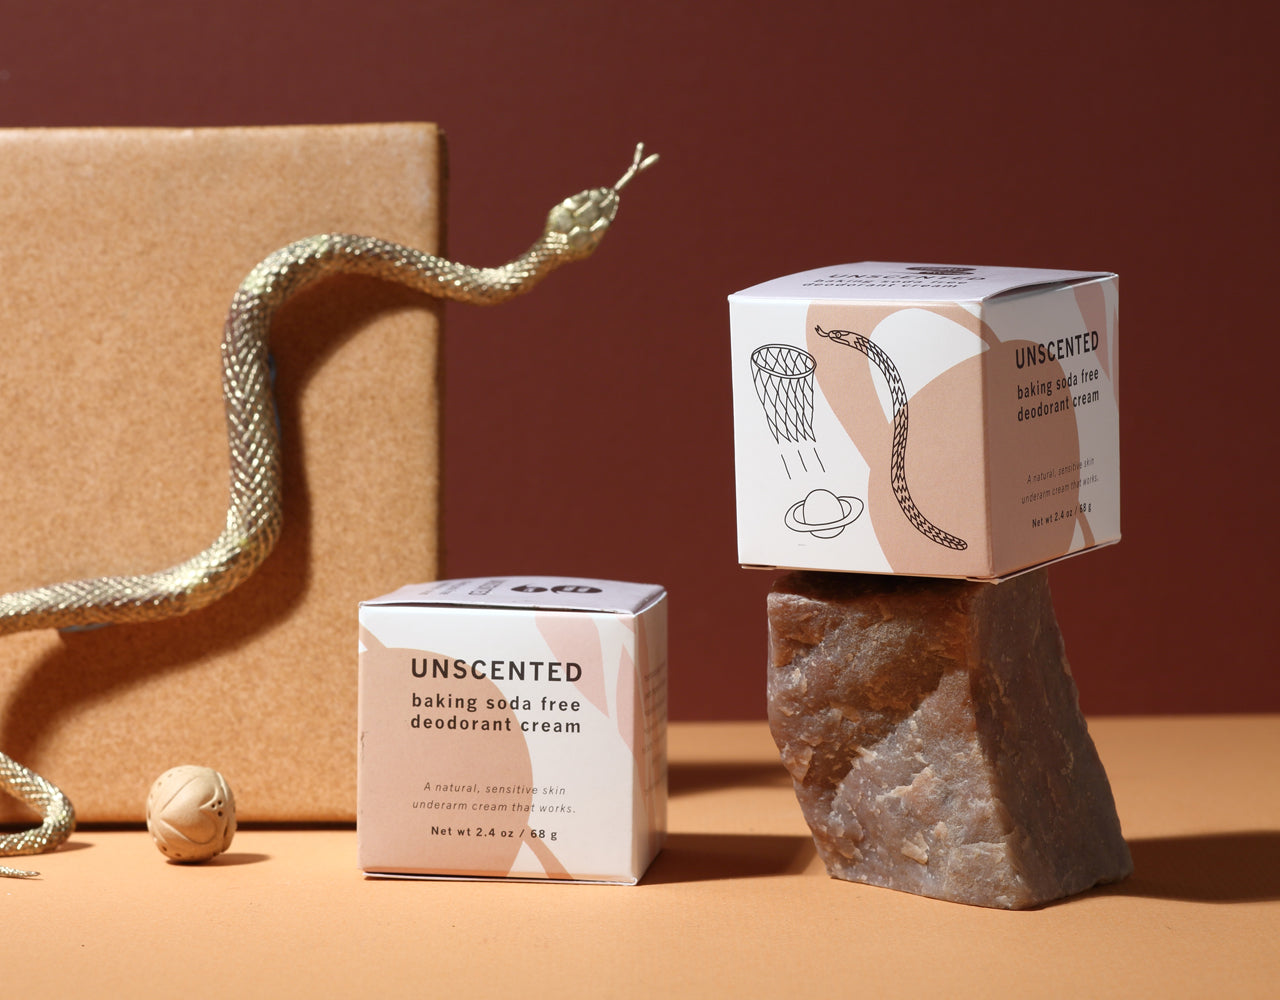 Two Meow Meow Tweet Unscented Deodorant boxes in a scene with a cork block, gold plastic snake, round clay charm with a carved heart, and brown granite; on a sand-colored surface and against a rust-colored background